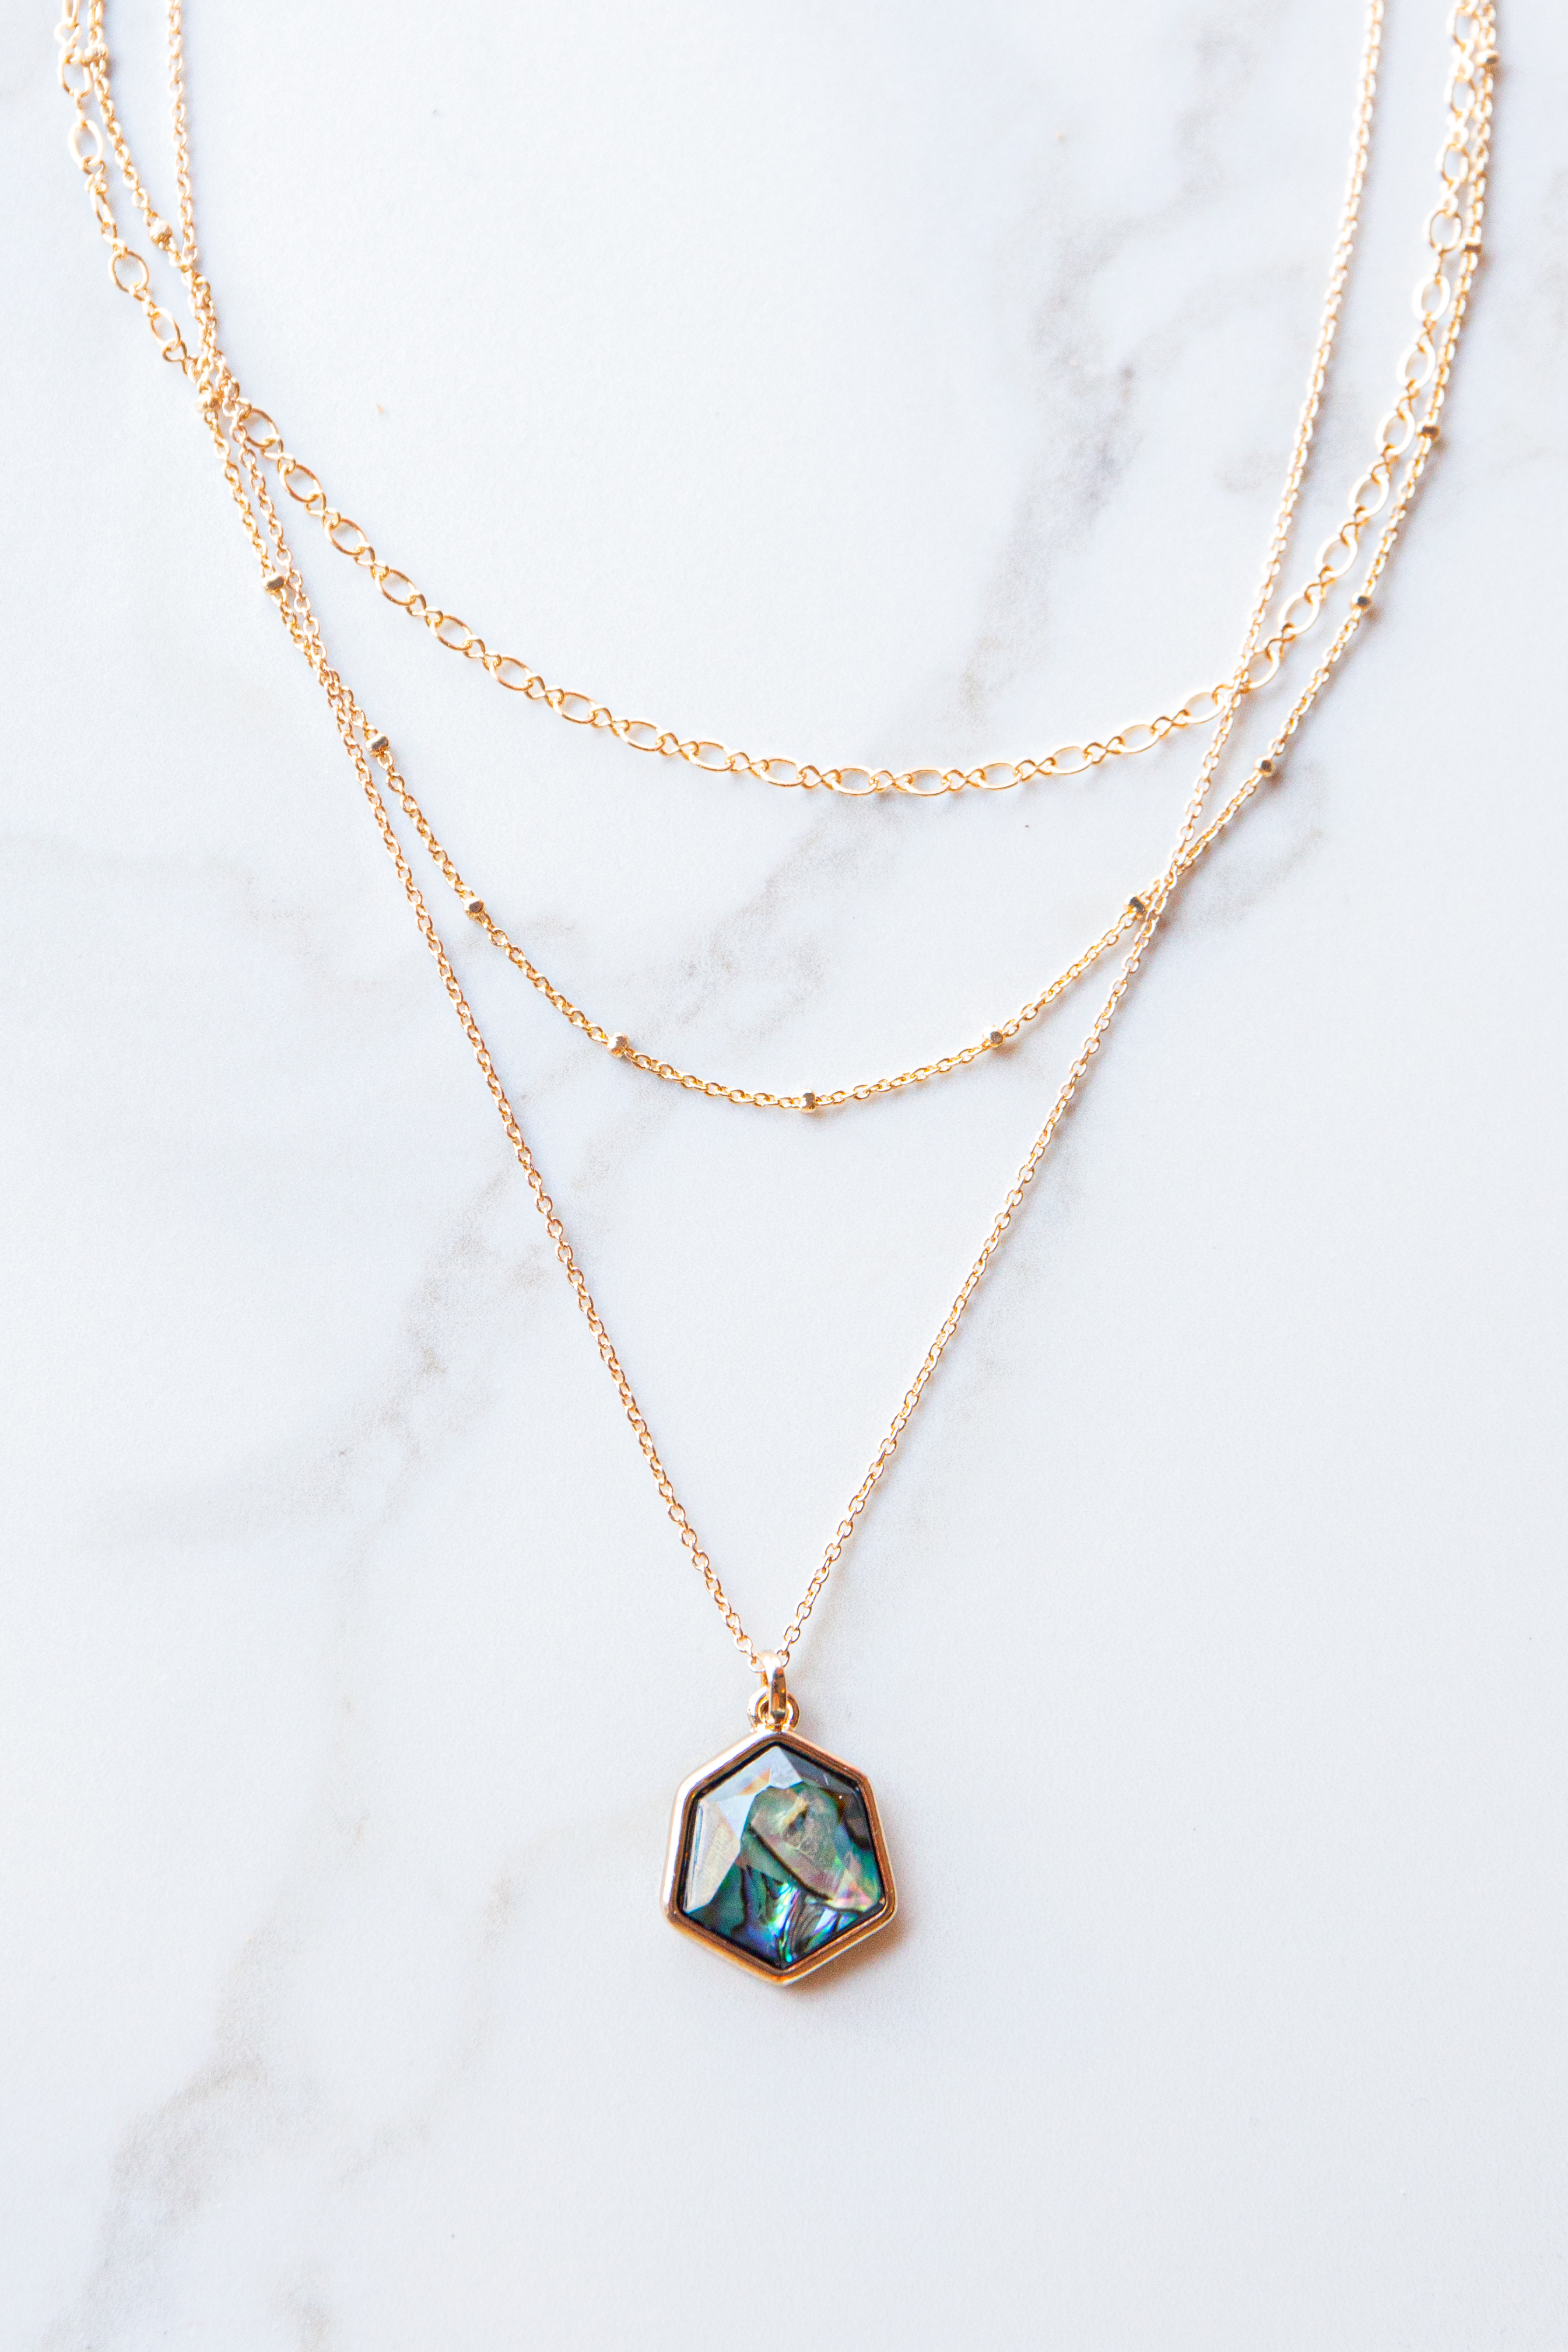 Gold Necklace with Marbled Stone Pendant